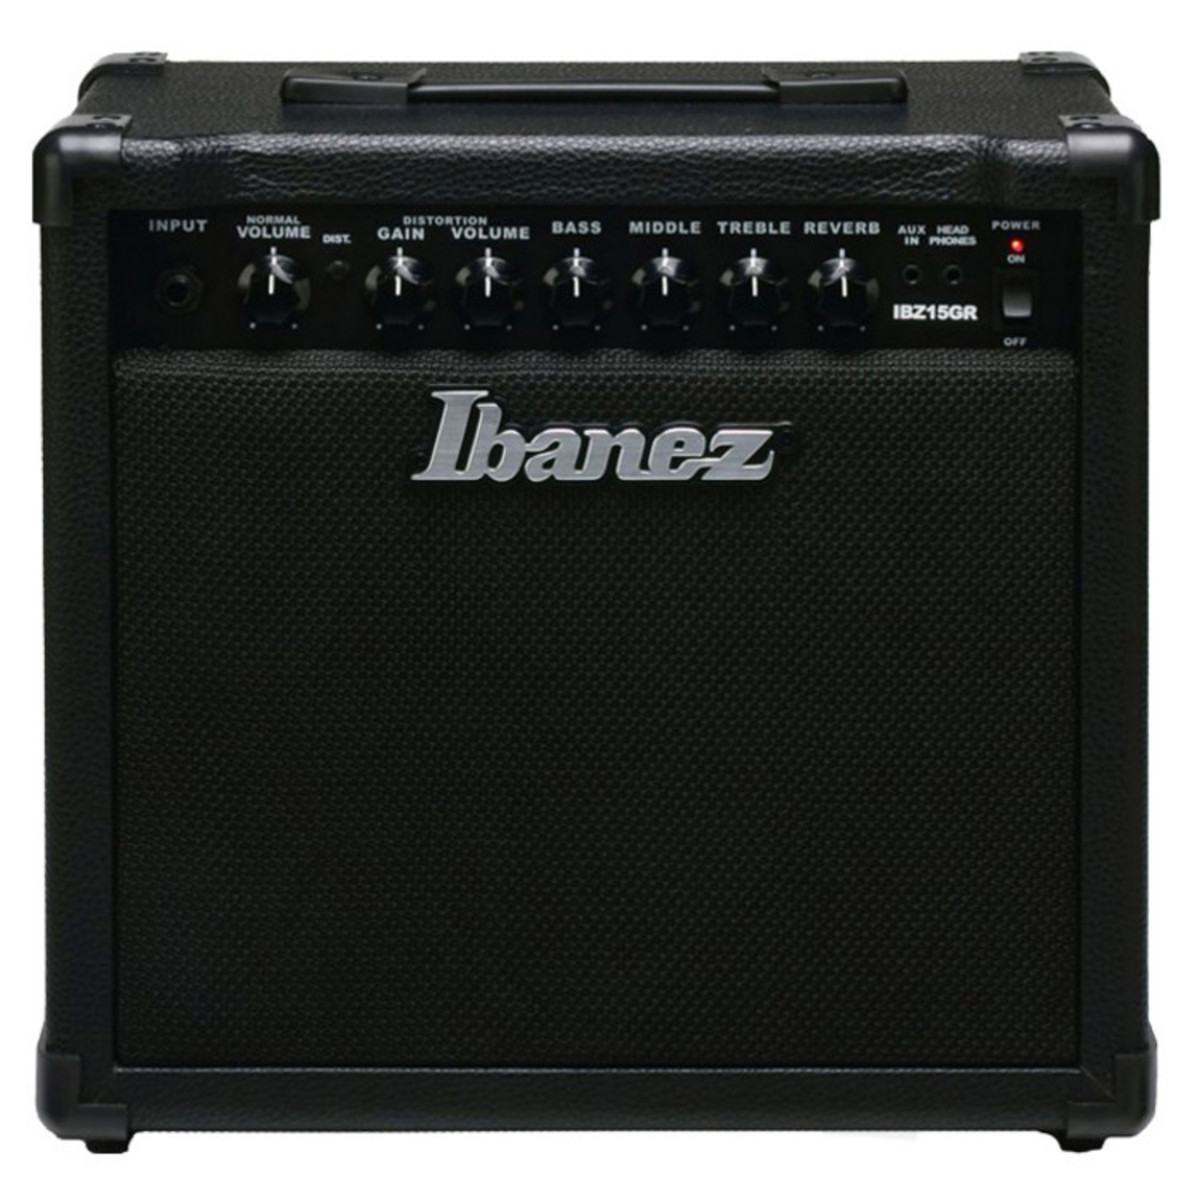 ibanez ibz10g 10w guitar combo amp nearly new at. Black Bedroom Furniture Sets. Home Design Ideas